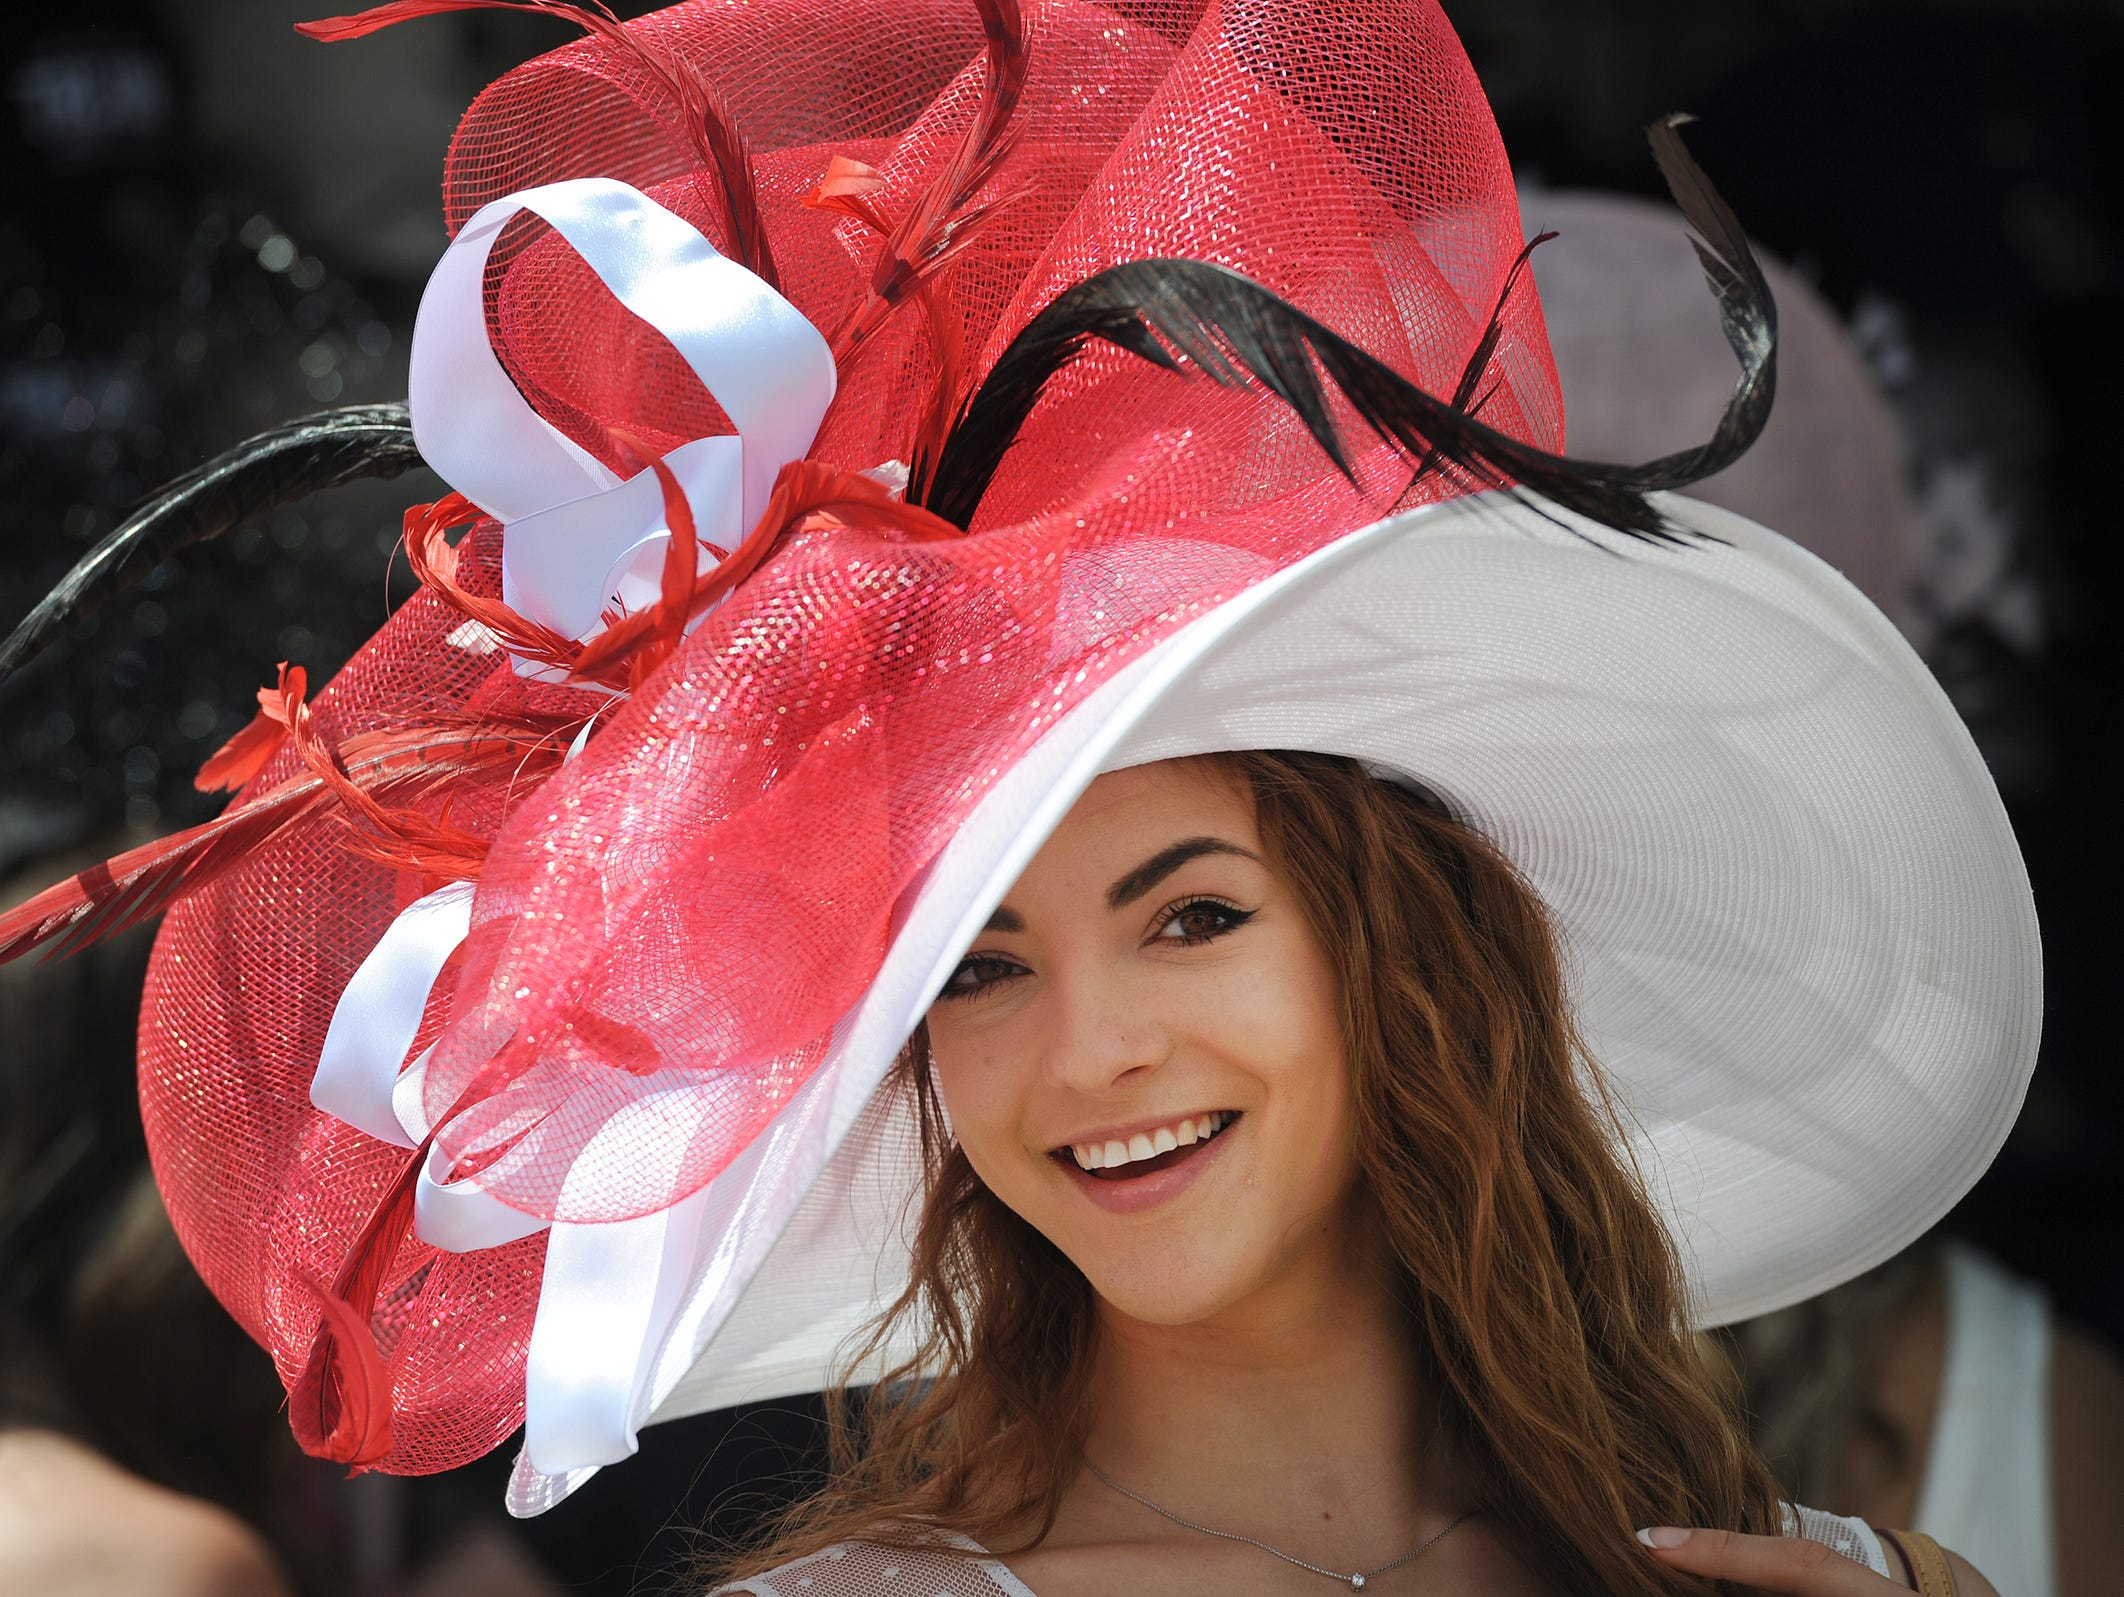 Derby is right around the bend, get the perfect dress, hat or bow tie with a $200 VISA gift card. Enter 3/30-4/19